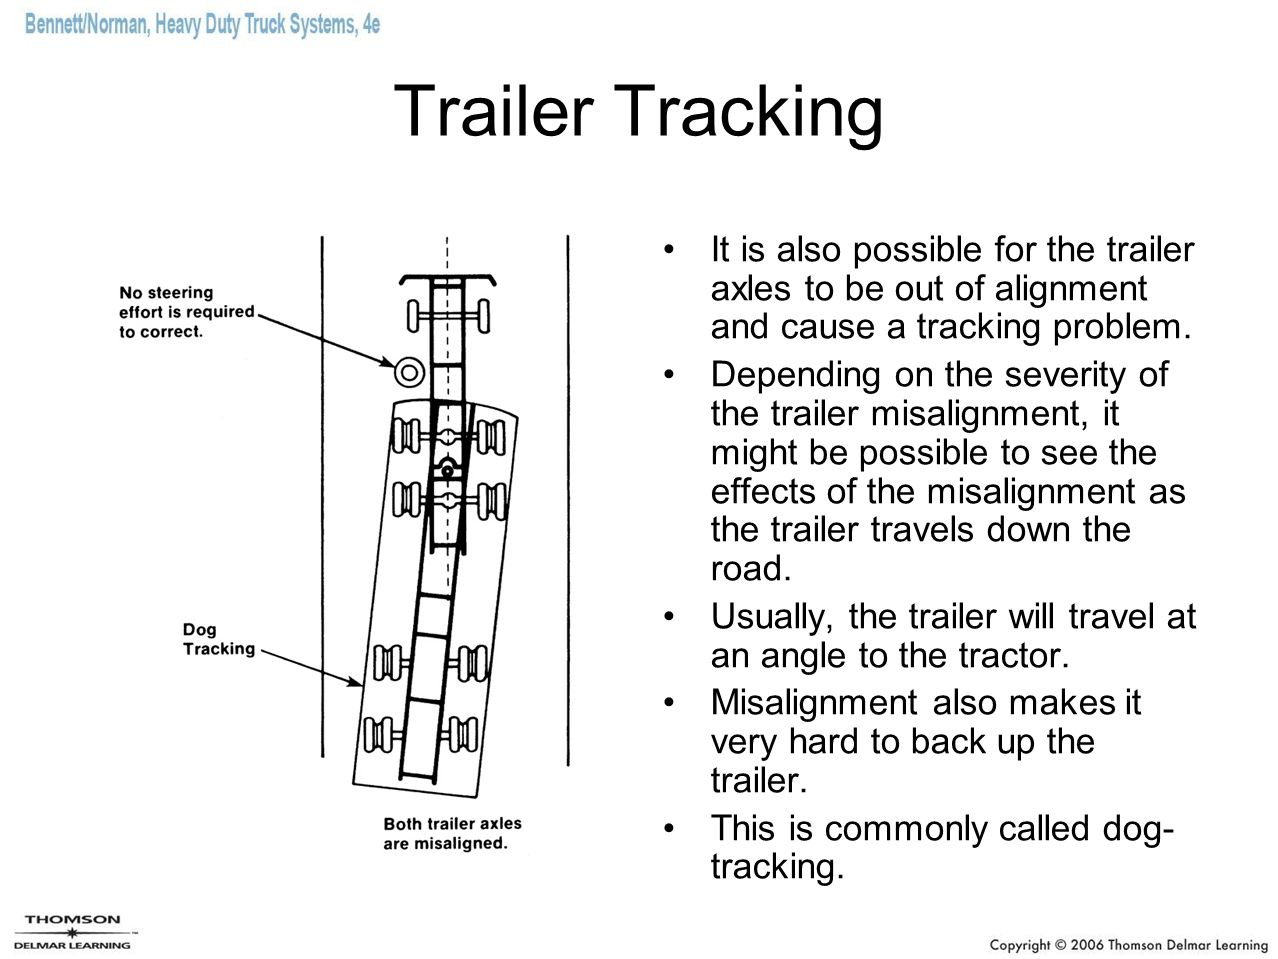 Trailer Tracking It is also possible for the trailer axles to be out of alignment and cause a tracking problem.